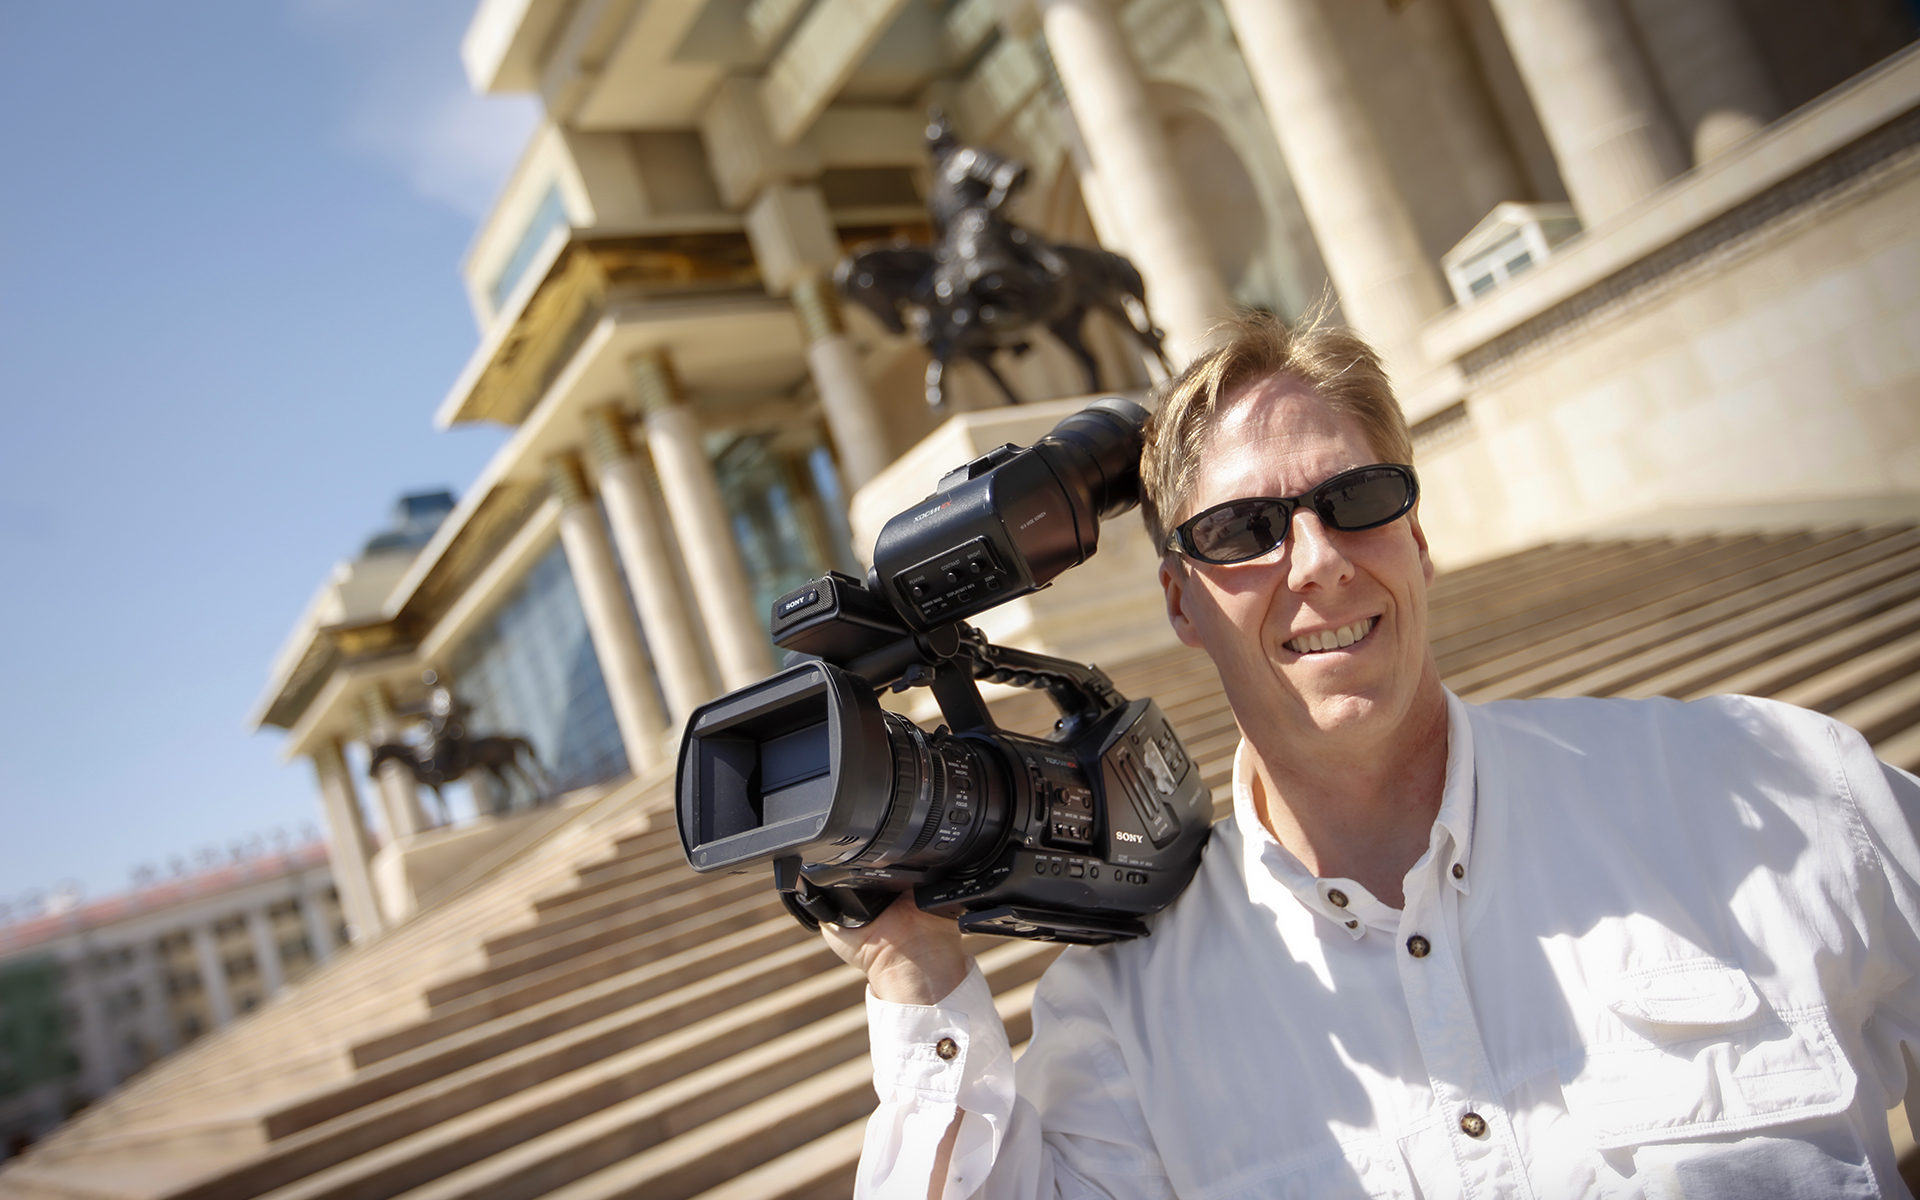 James Dalrymple filming on the Palace Steps in Ulan Bator, Mongolia.